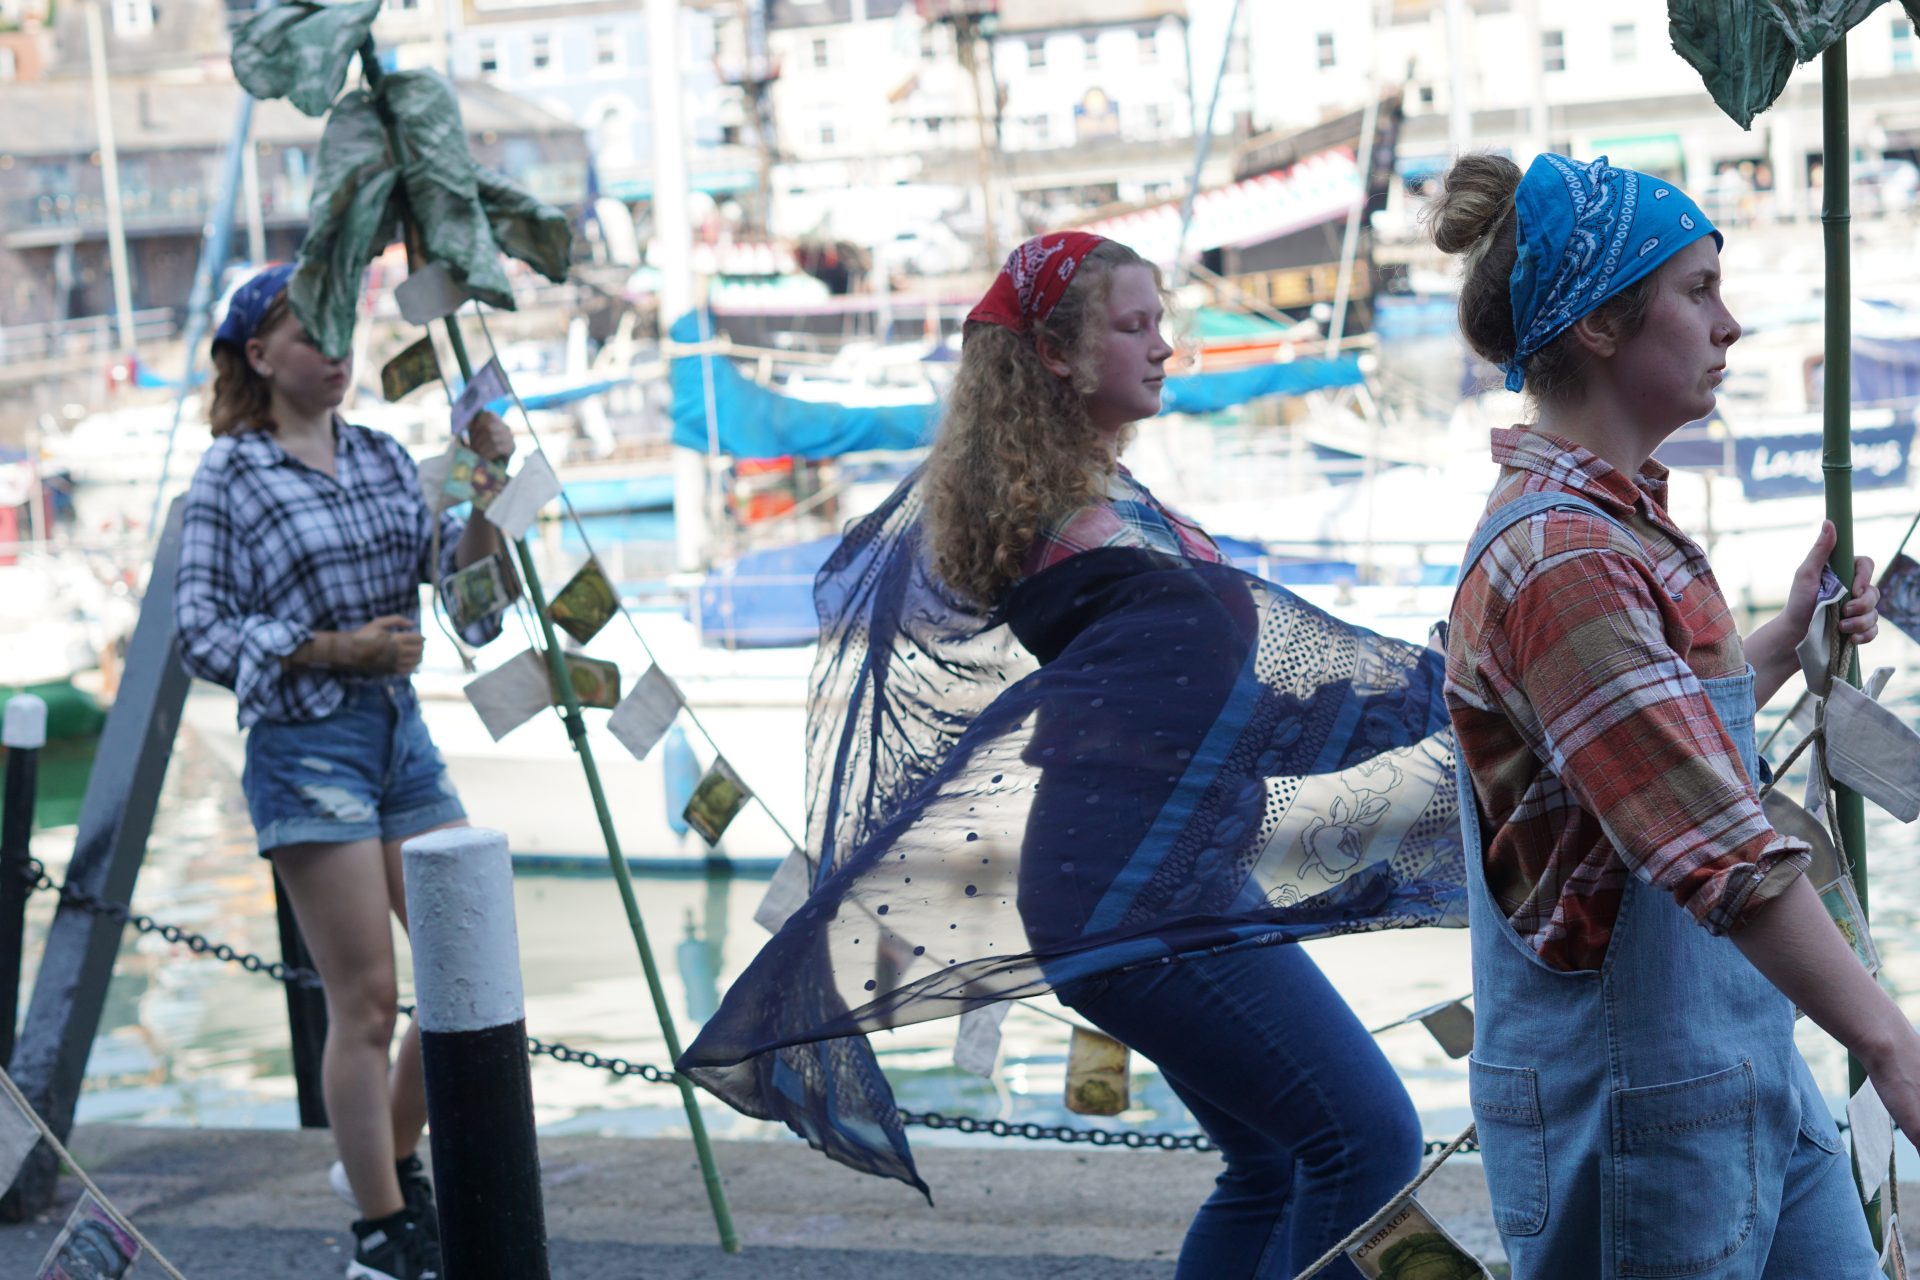 Three young people hold protest banners that look like cabbages and dress as farmers on a perfomrance protest, there are boats in the background and one femme holds a long blue scarf flowing in the wind.